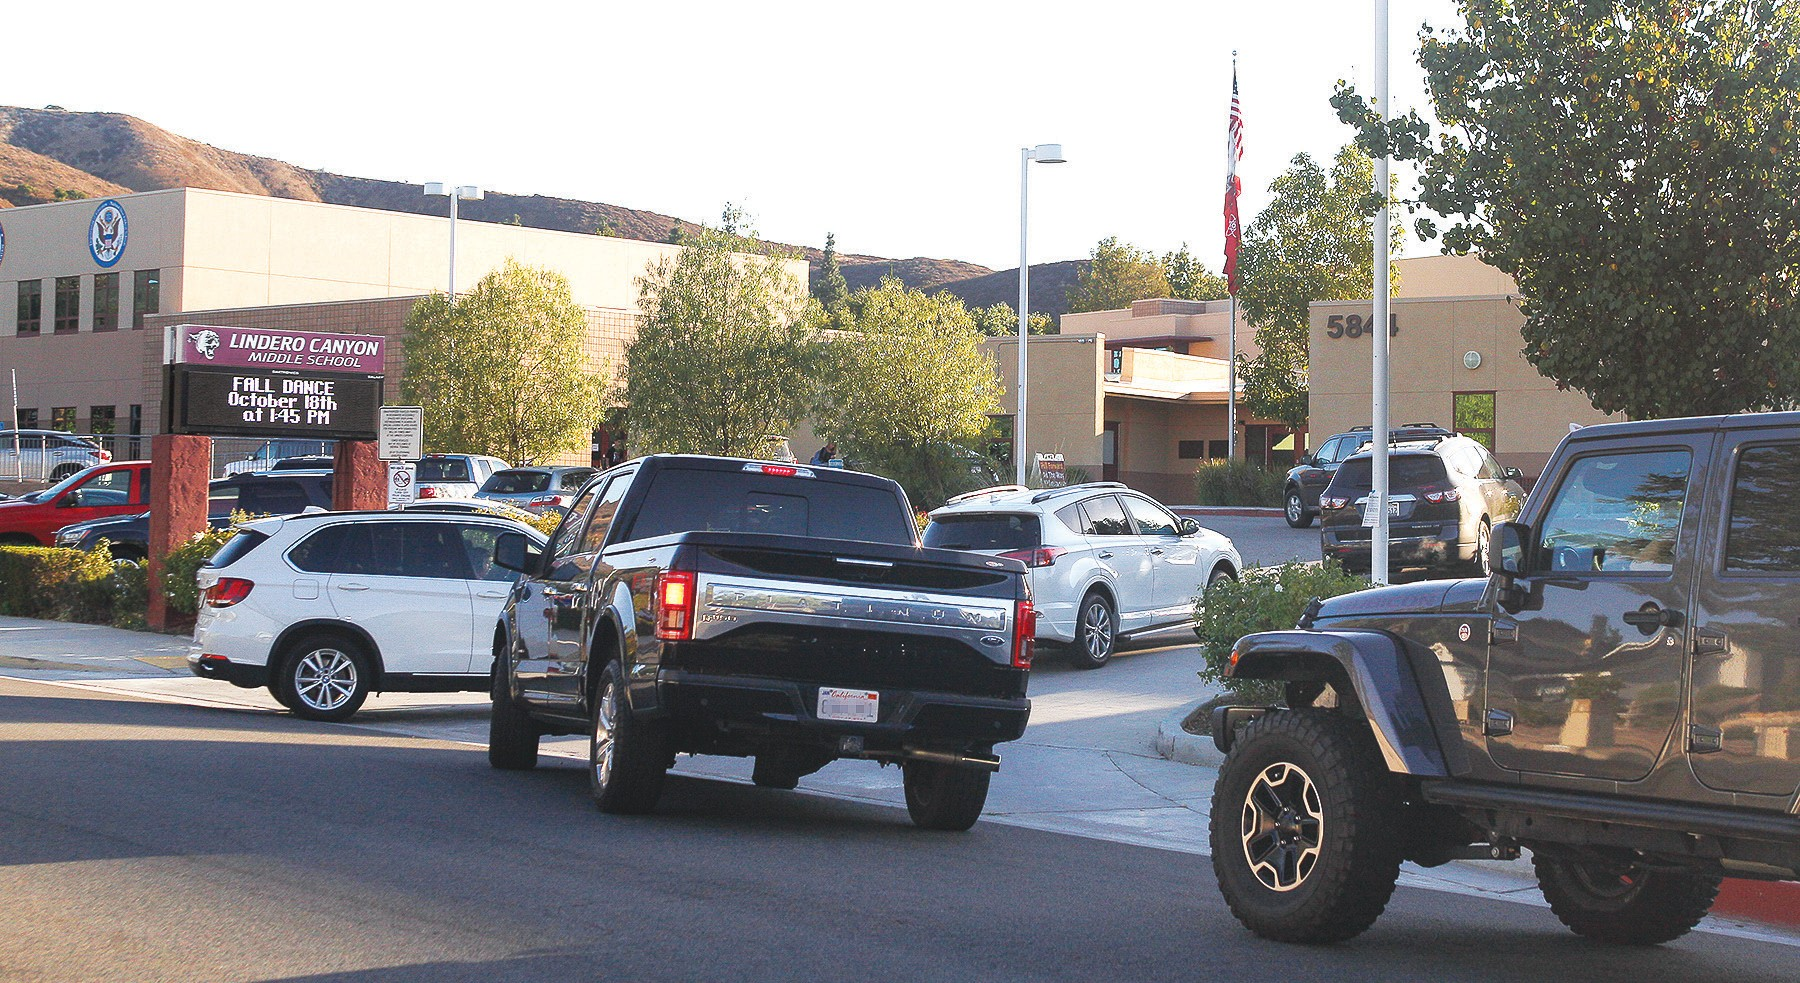 SAFETY REPORT CARD—Drivers try to remain patient at Lindero Canyon Middle School in Agoura Hills. The school received a B- grade for driver safety around campus, better than most. RICHARD GILLARD/Acorn Newspapers